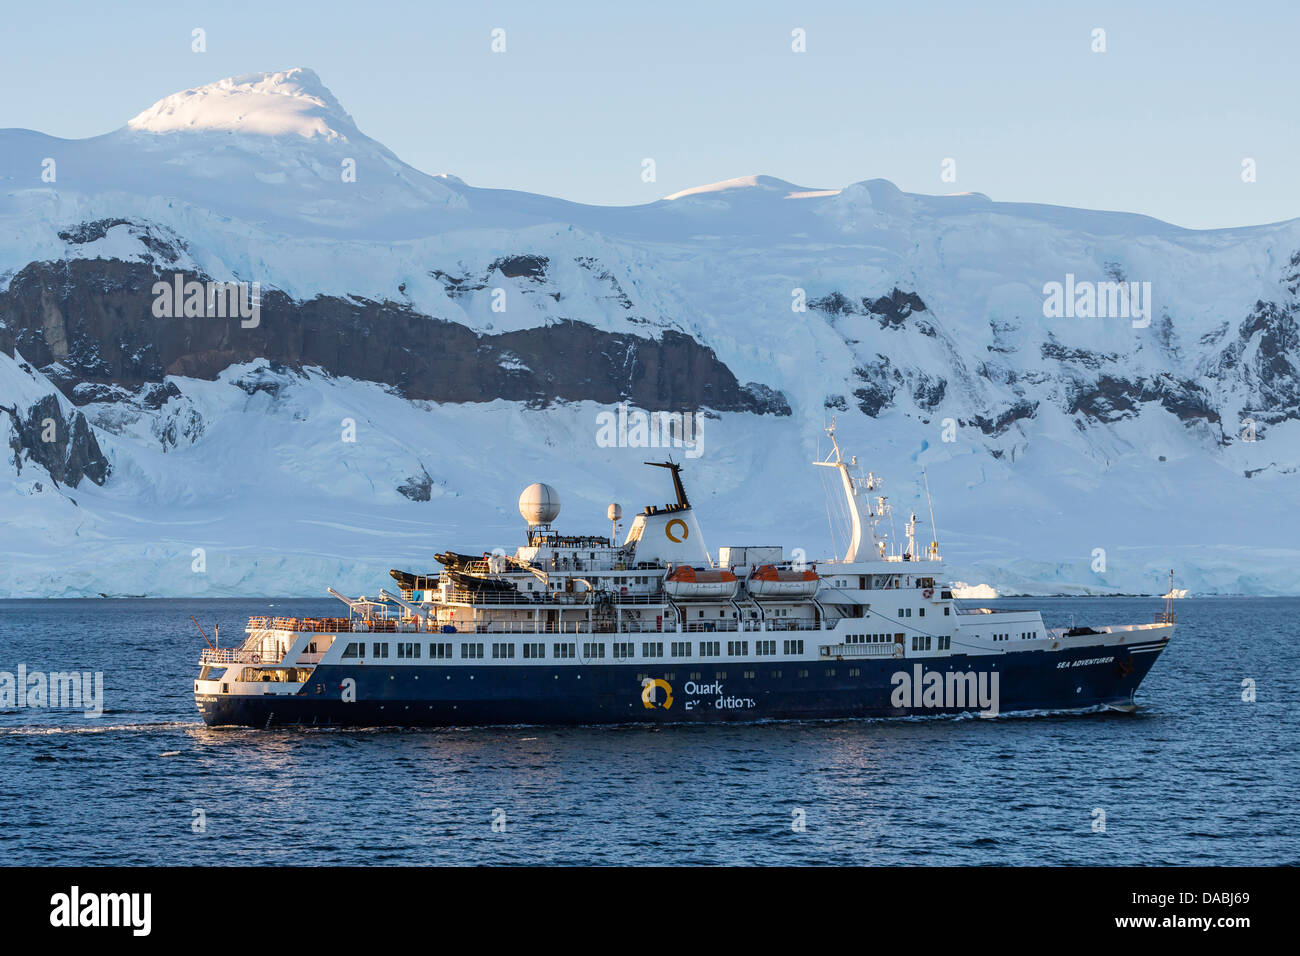 The Quark Expeditions ship Sea Adventurer operating in the Gerlache Strait, Antarctica, Southern Ocean, Polar Regions - Stock Image